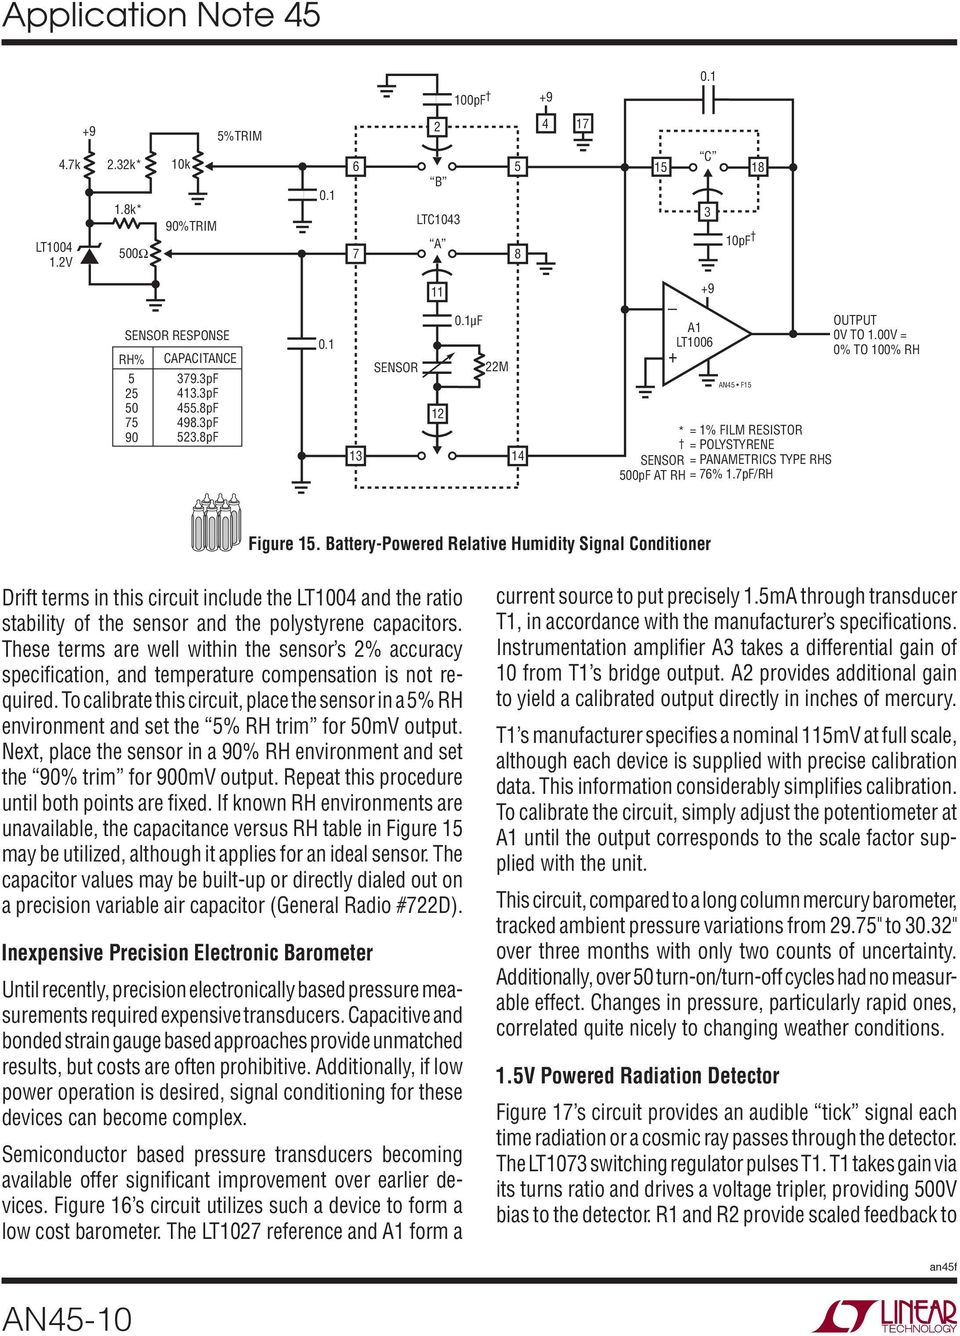 Application Note 45 June Measurement And Control Circuit Collection Audio Signal Detector Switch Controlcircuit These Terms Are Well Within The Sensor S 2 Accuracy Specification Temperature Compensation